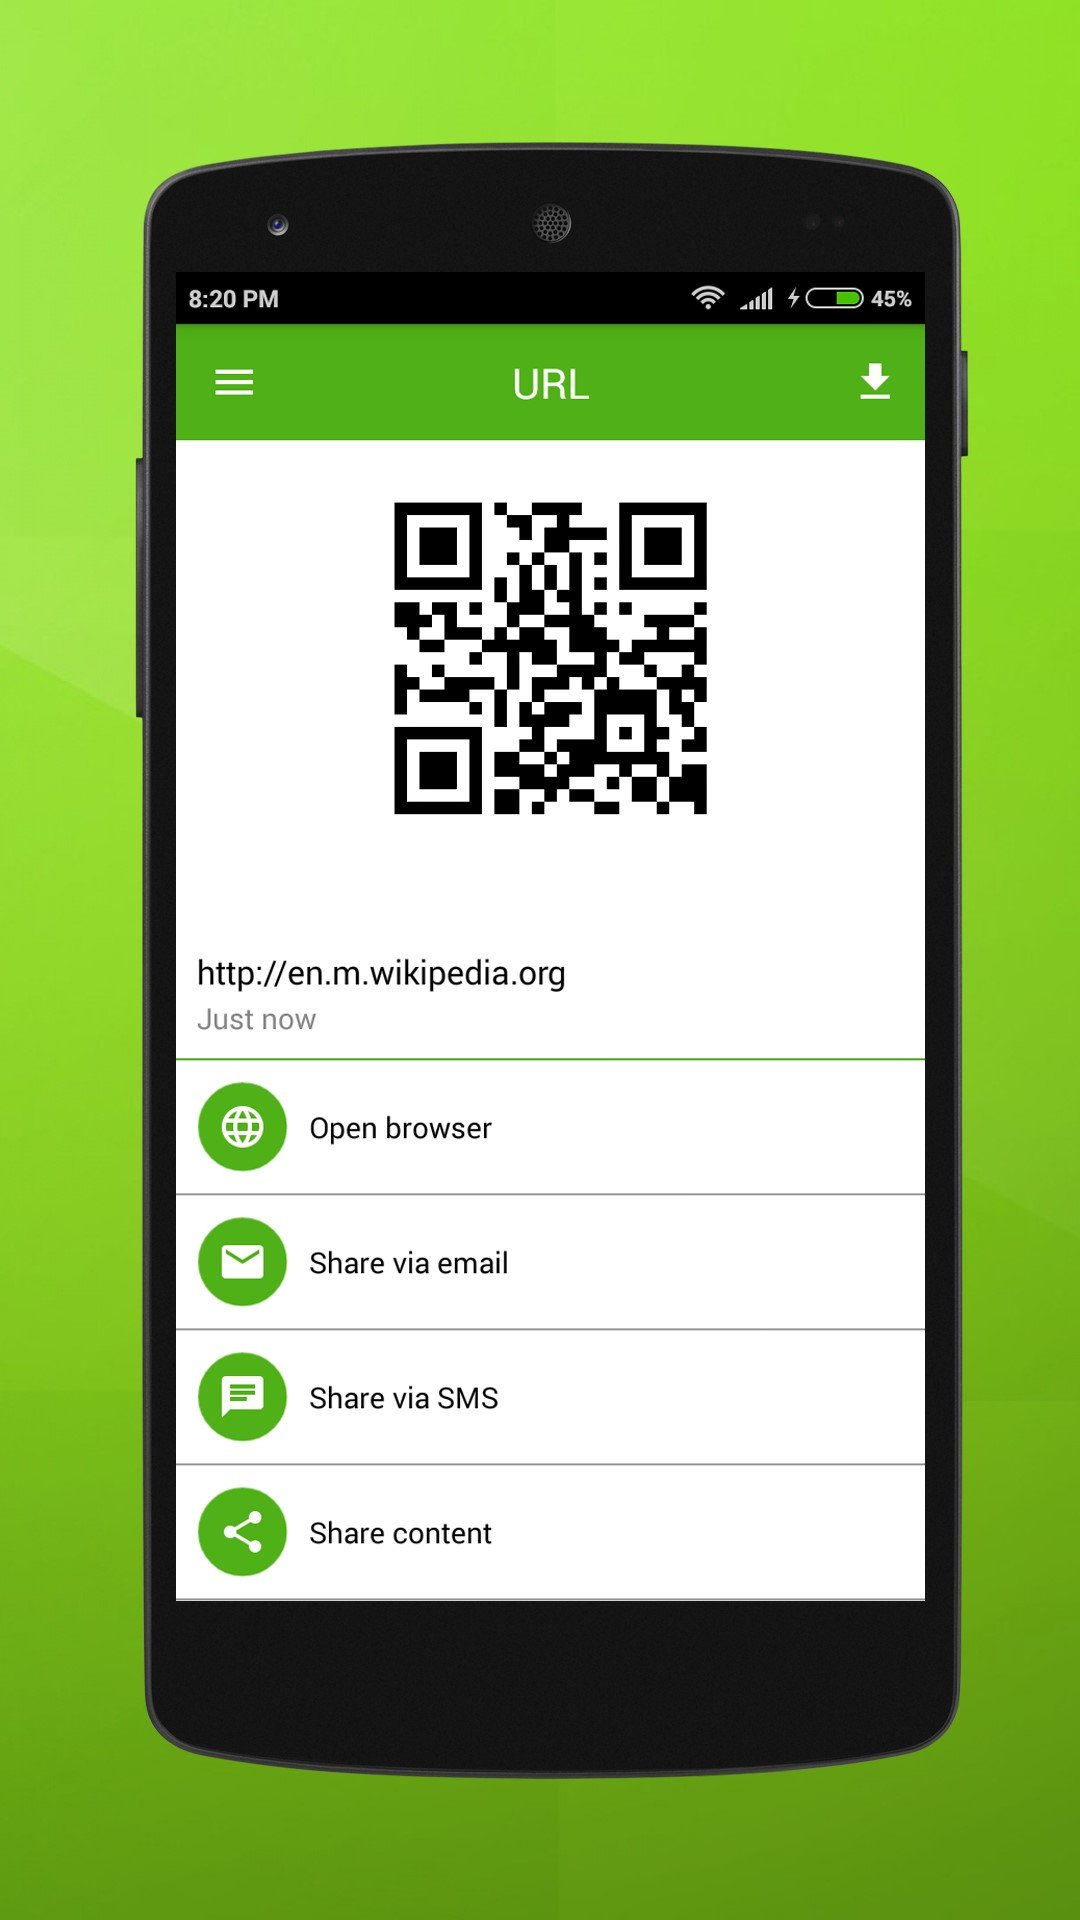 How to Scan Barcodes With an Android Phone Using Barcode Scanner How to Scan Barcodes With an Android Phone Using Barcode Scanner new foto